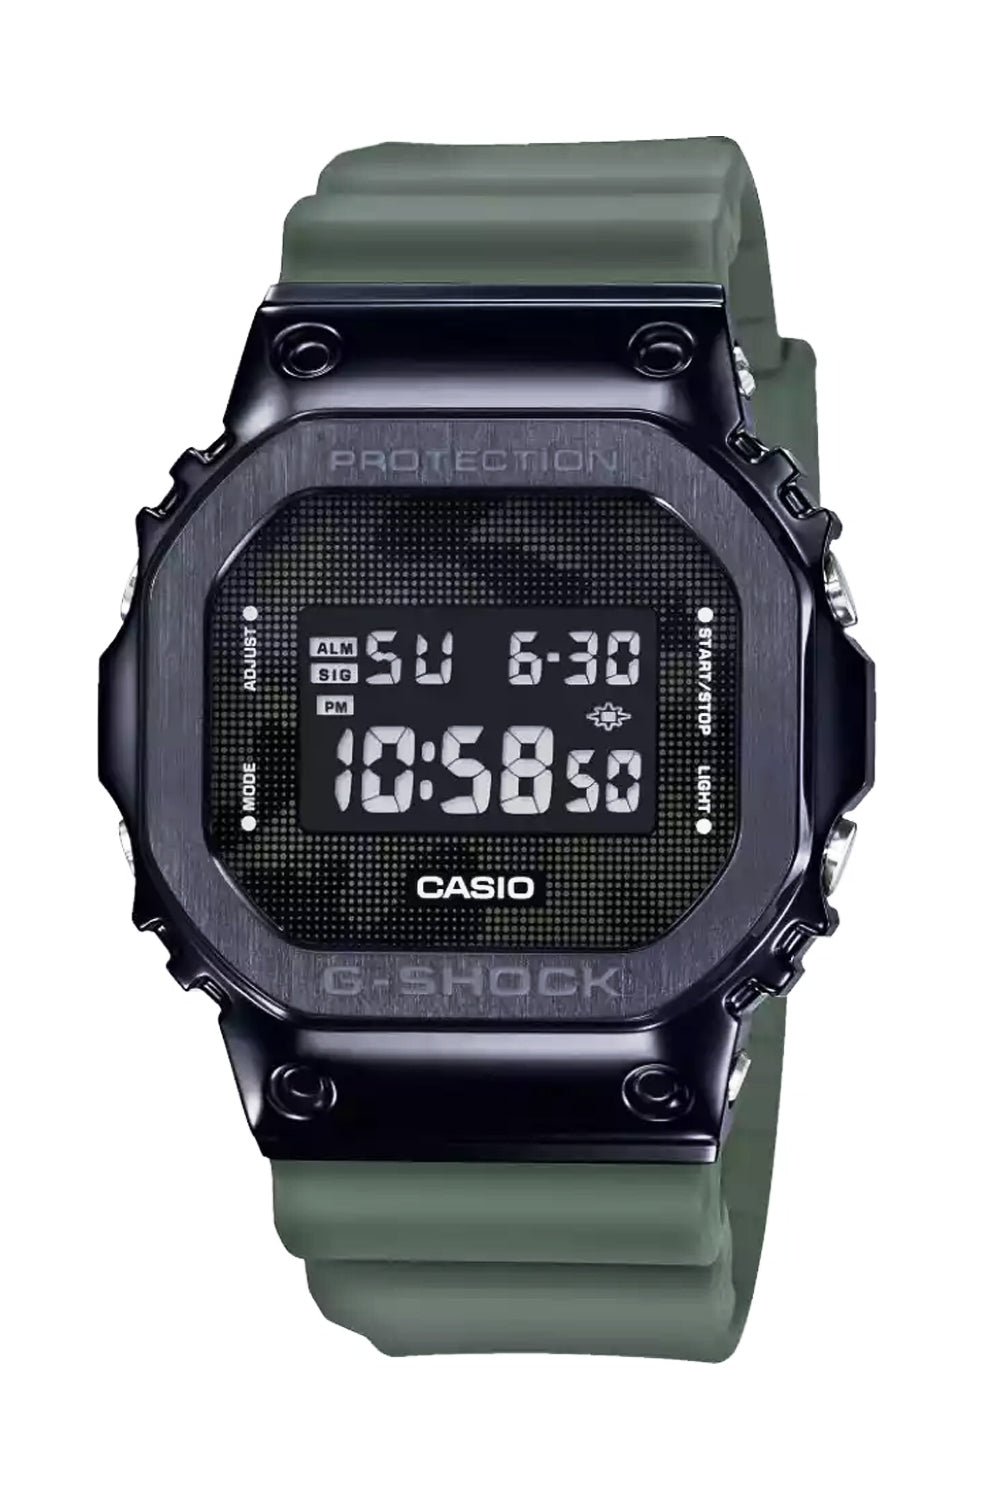 CASIO GM-5600B-3ER G-Shock digikello